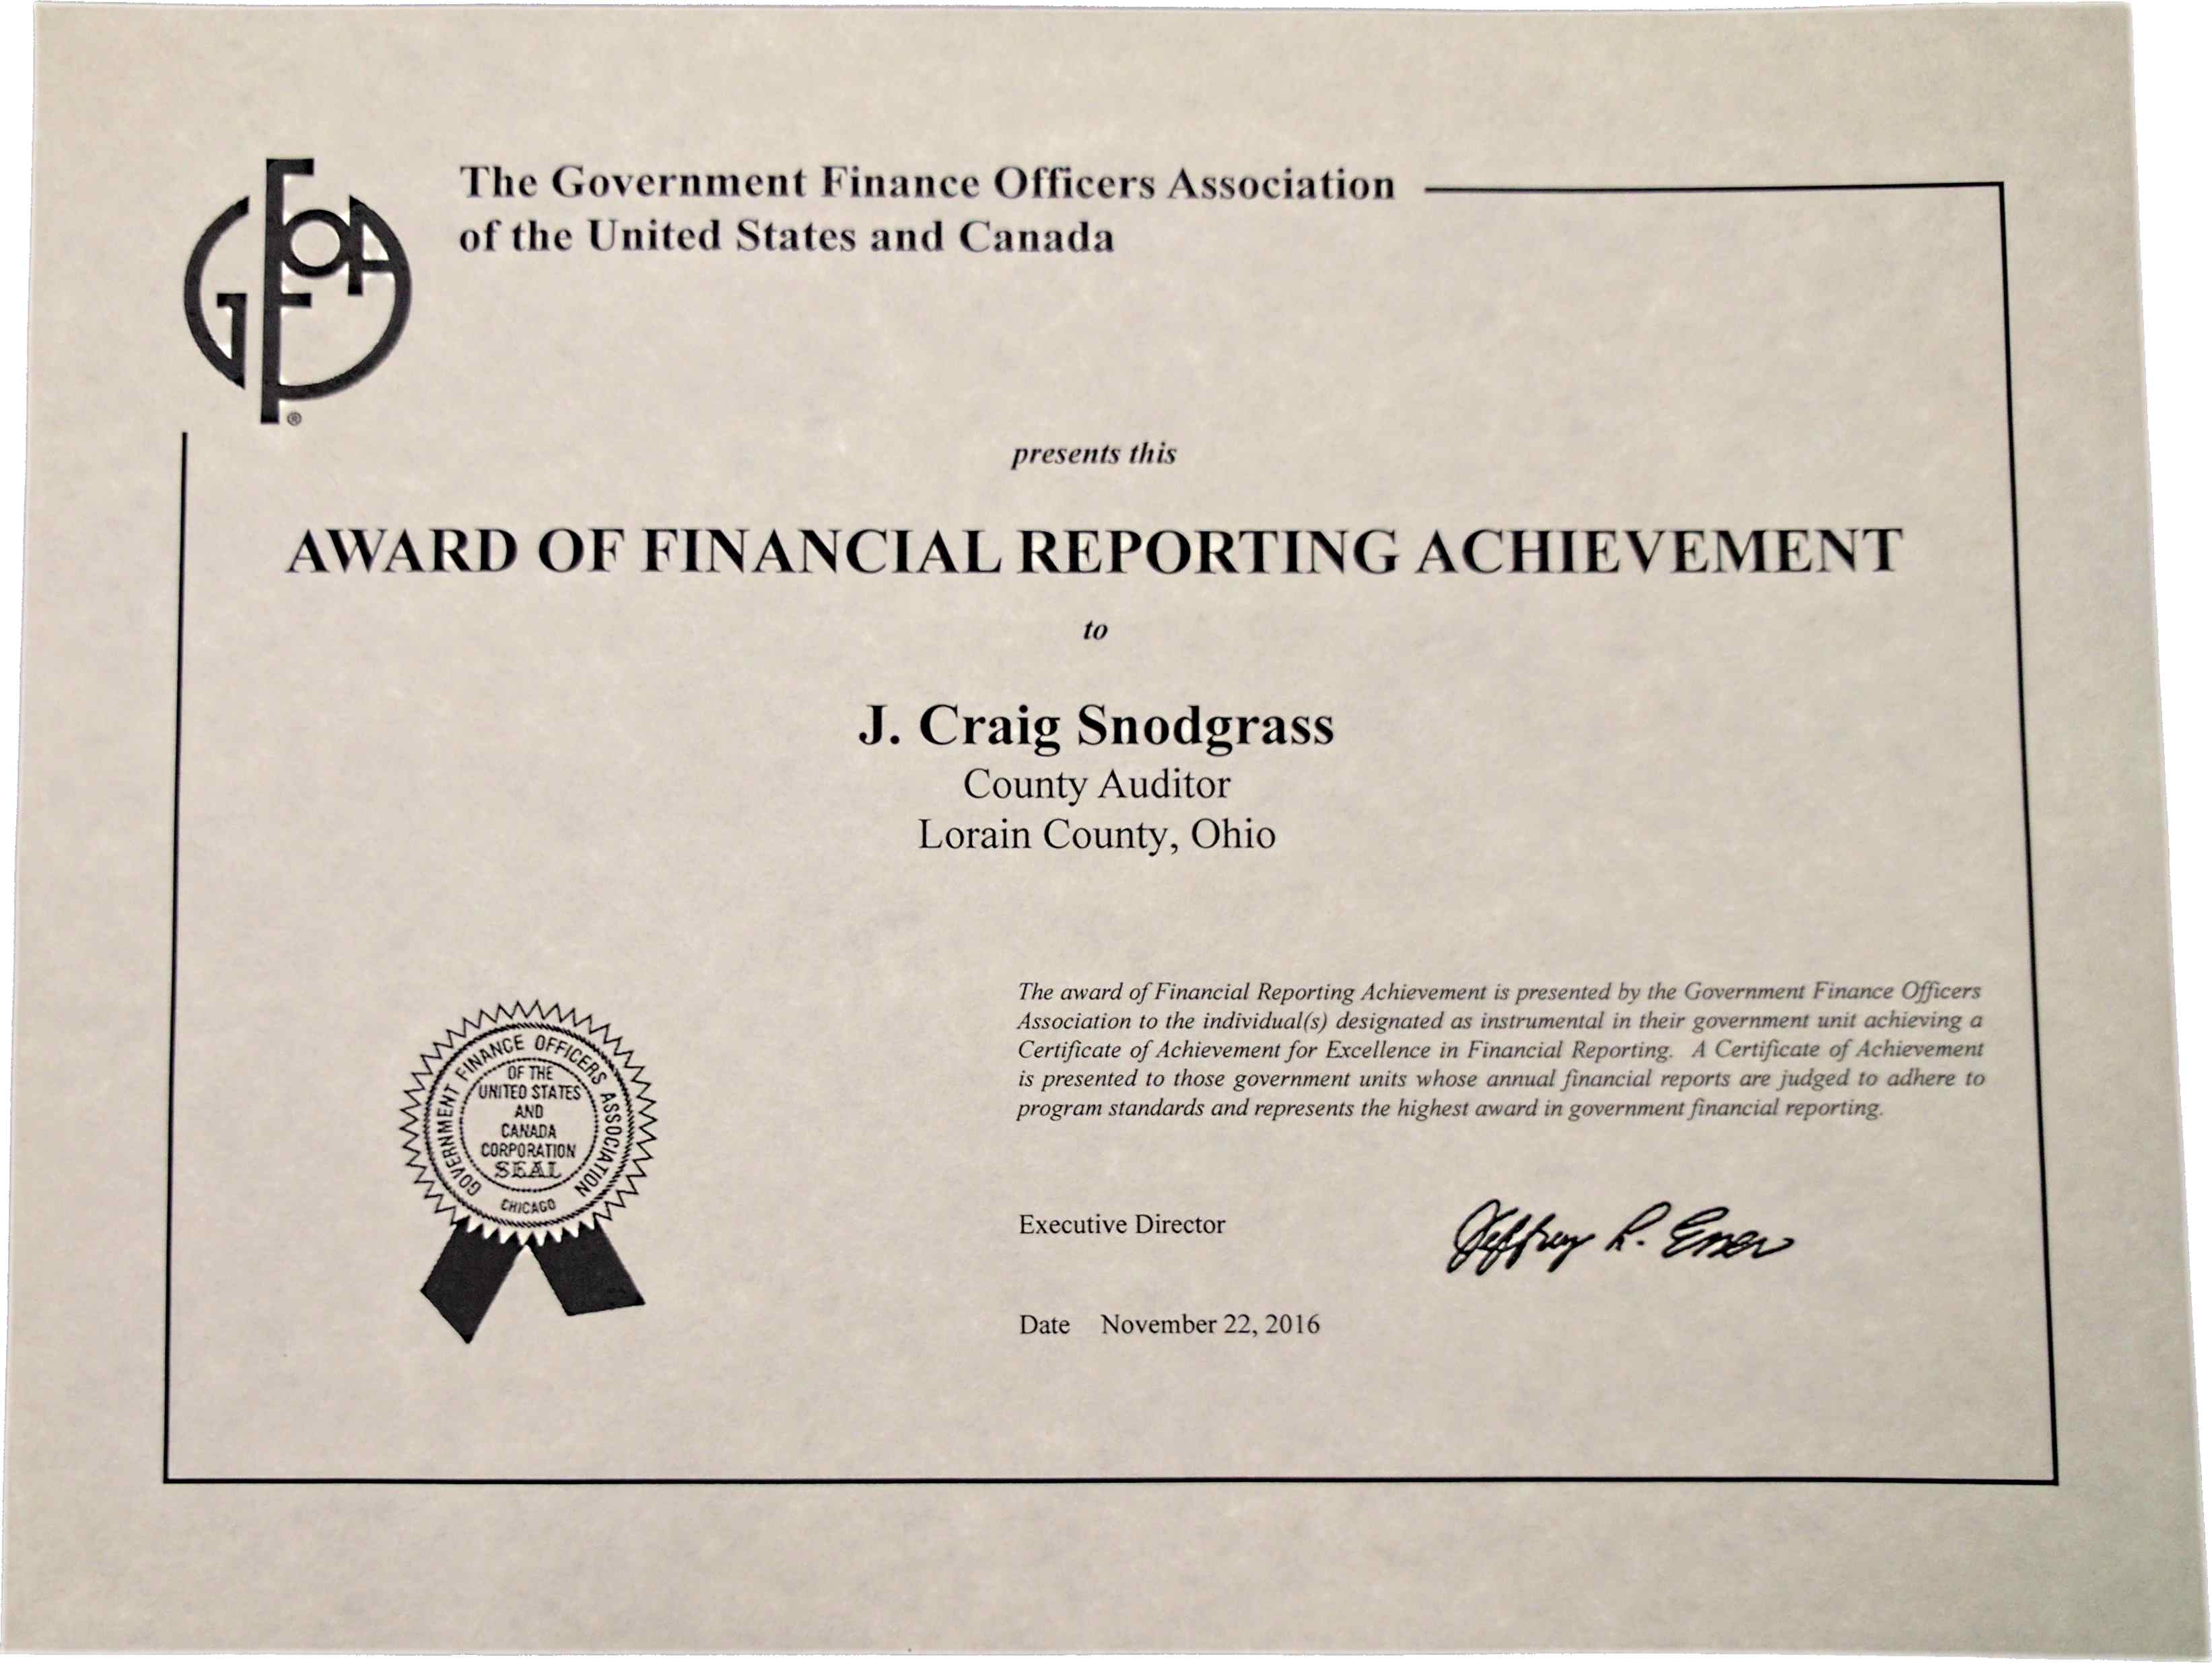 Award For Excellence In Financial Reporting